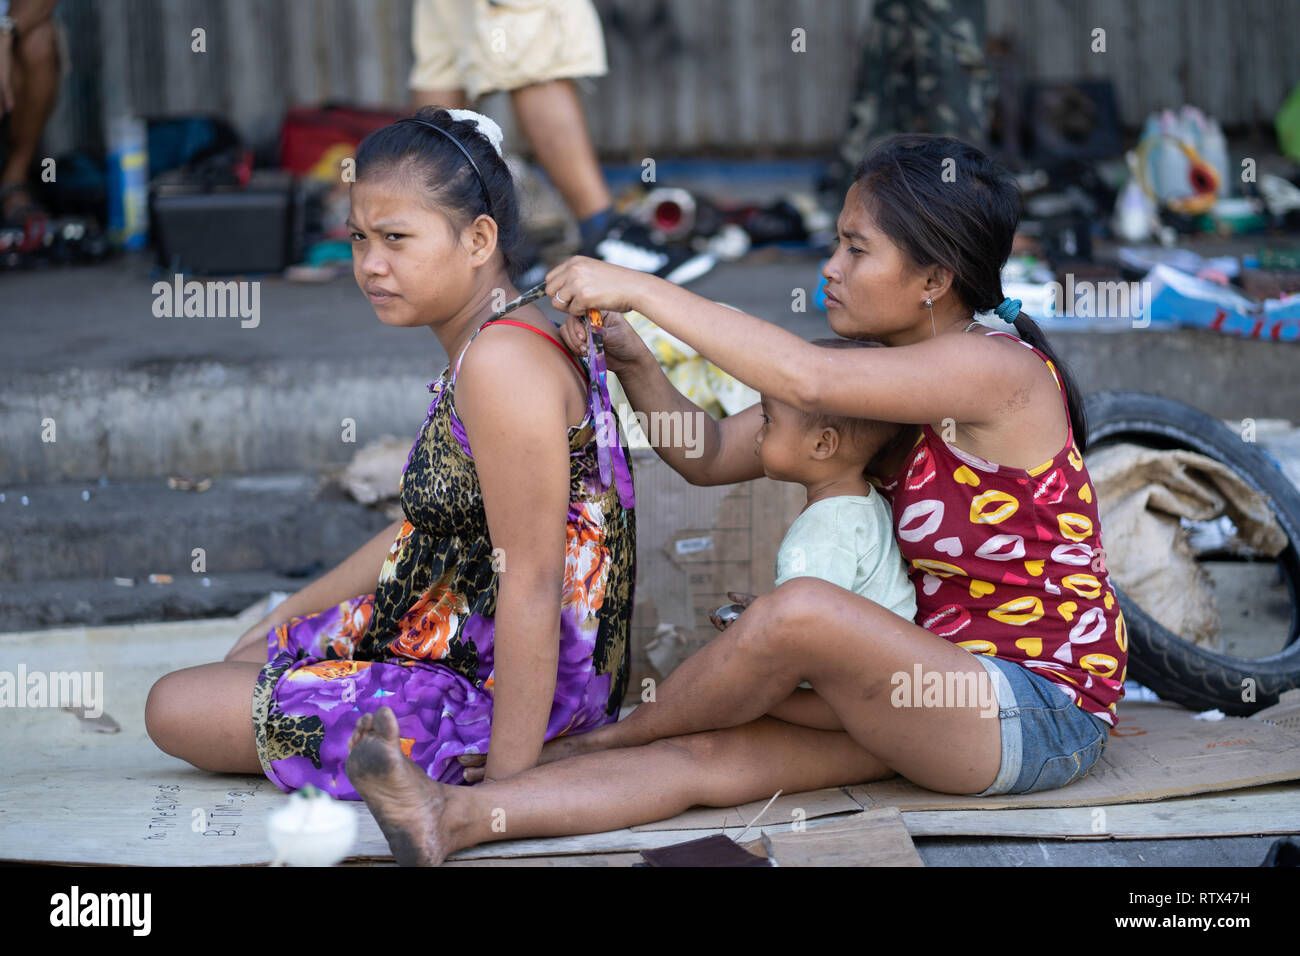 Two Filipino women,one without shoes,and a child sit on cardboard in a side street,Cebu City,Philippines - Stock Image